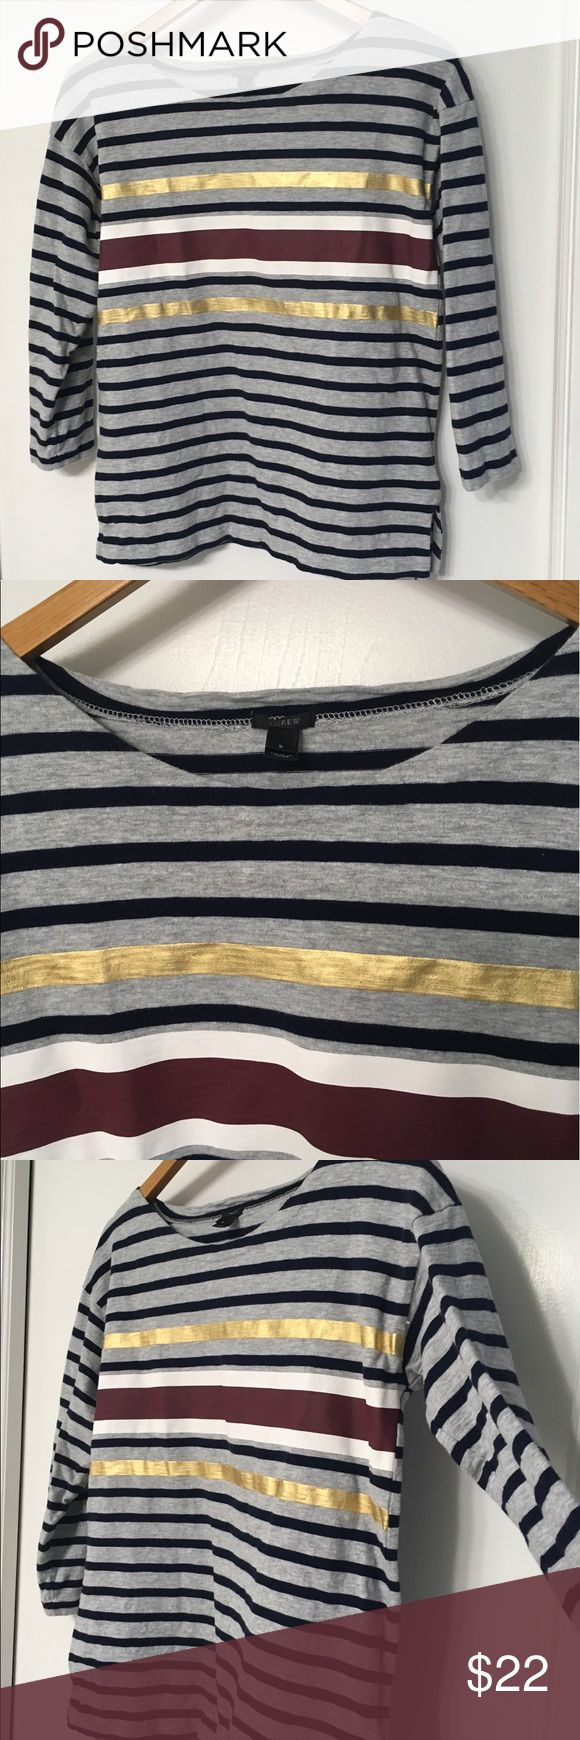 J Crew Foil Stripe T-Shirt grey red navy gold Adorable striped shirt from J Crew, size small. Top is in excellent condition with no rips, stains, or flaws! Please check out my other listings as well as I do offer a bundle discount! J. Crew Tops Blouses